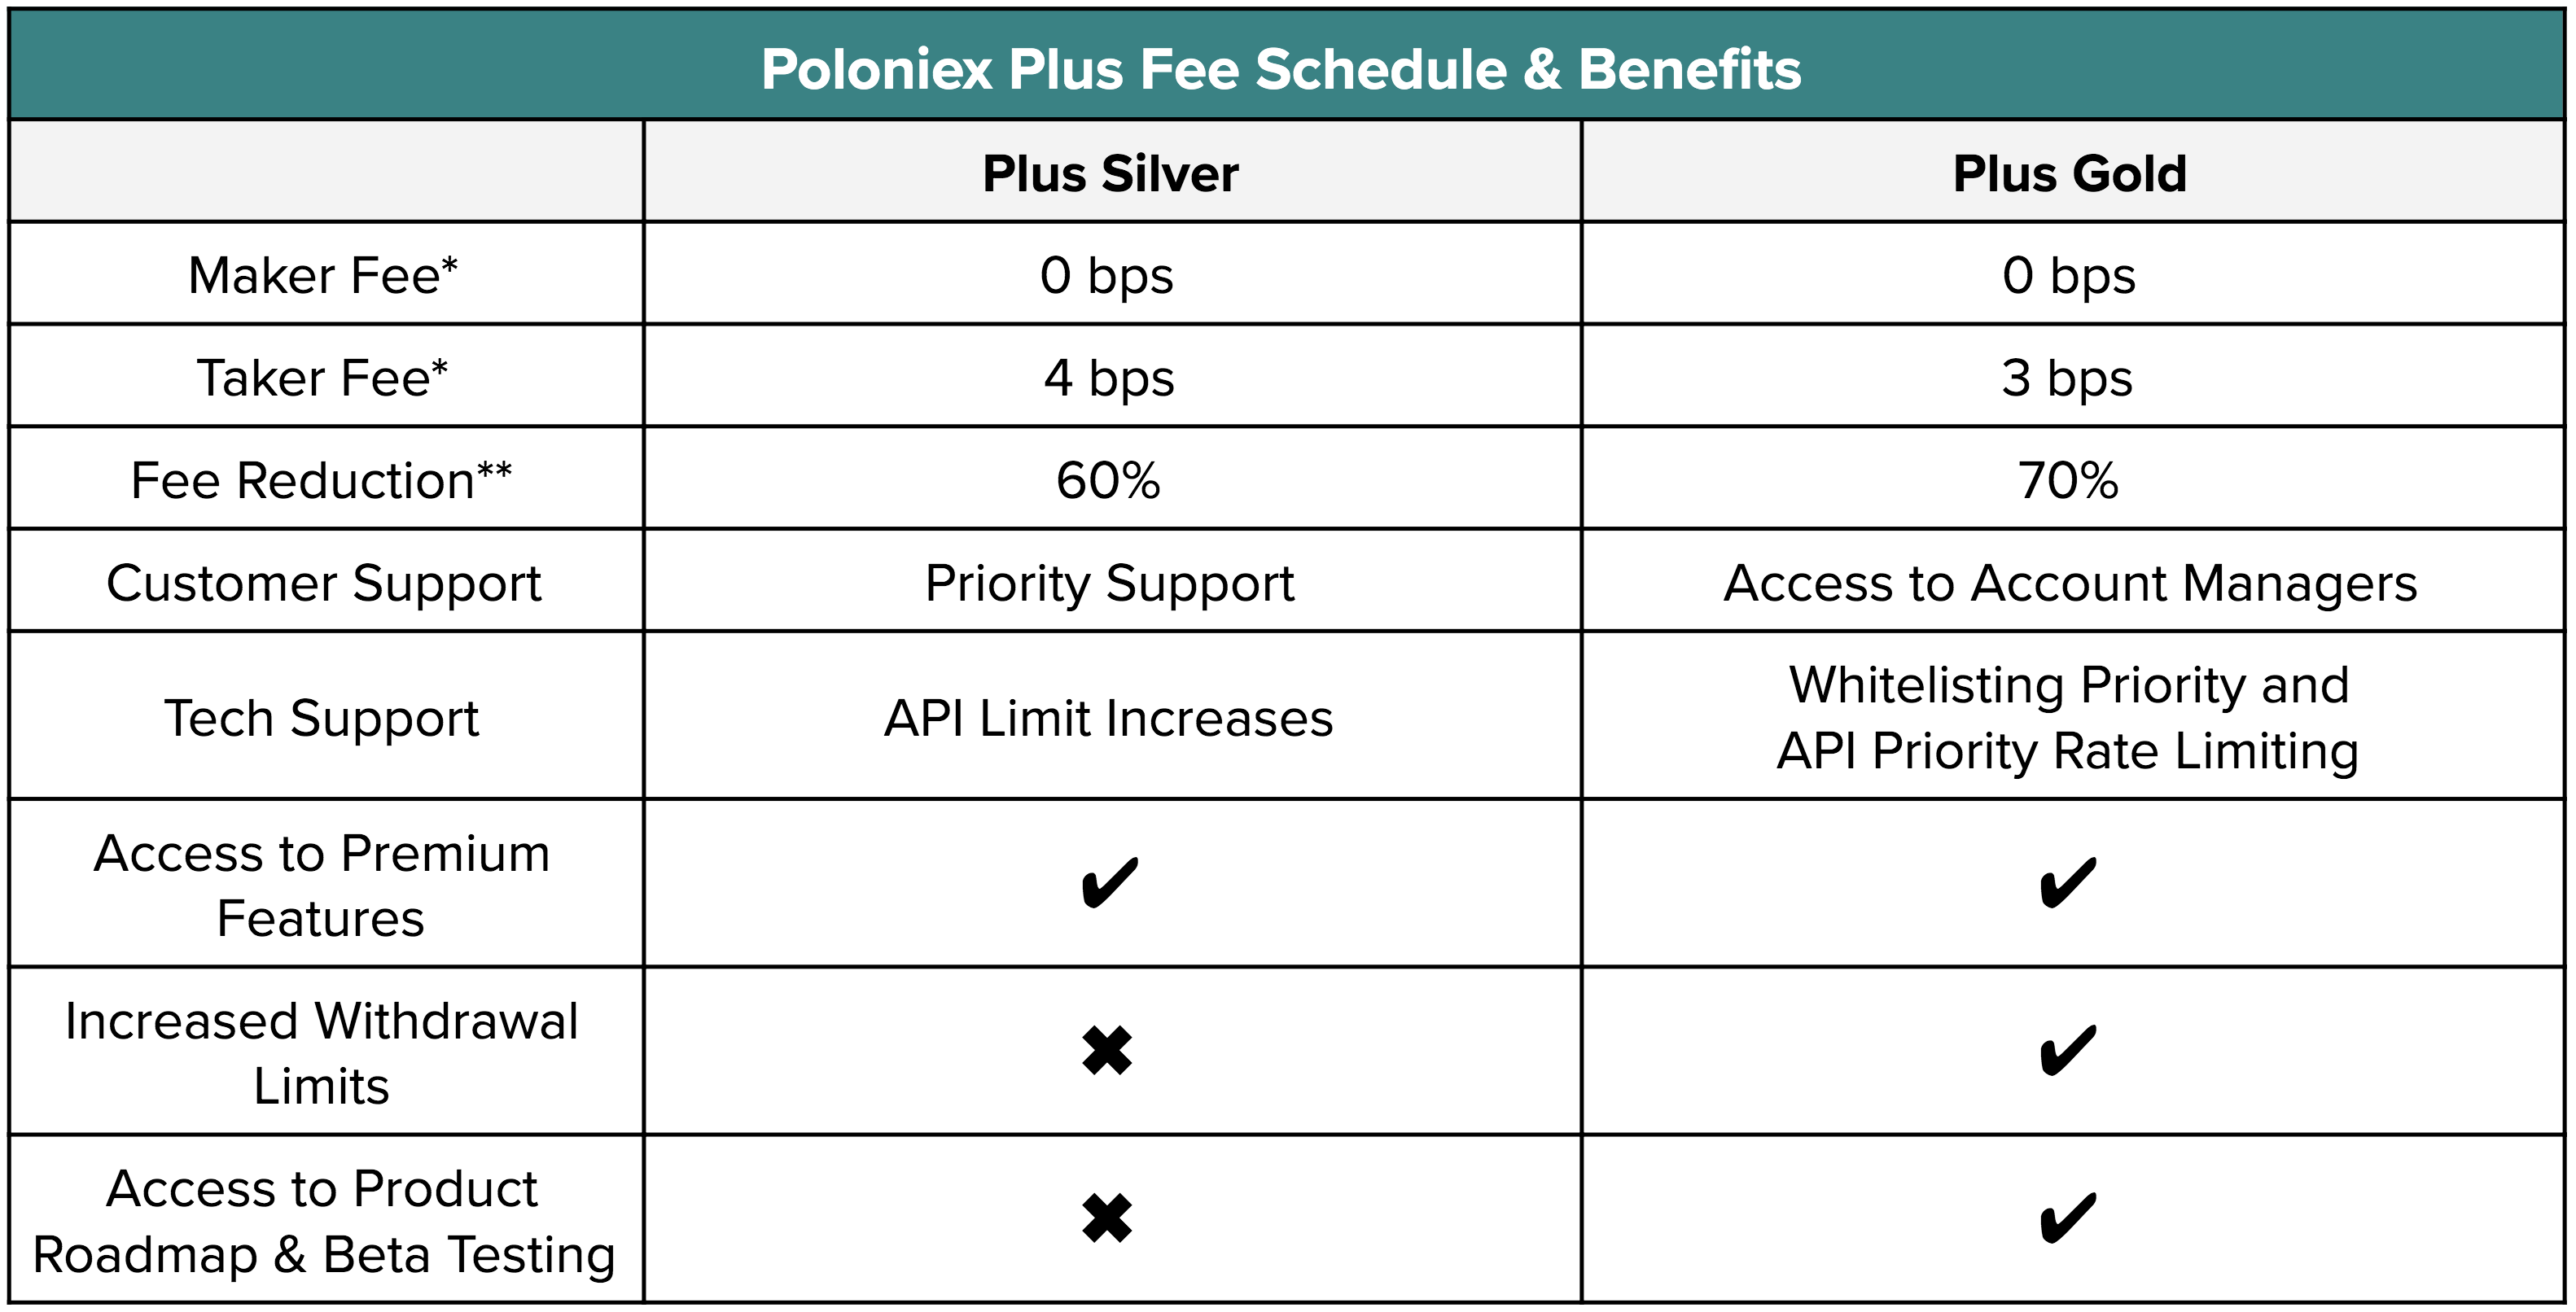 PP-fees-benefits.png